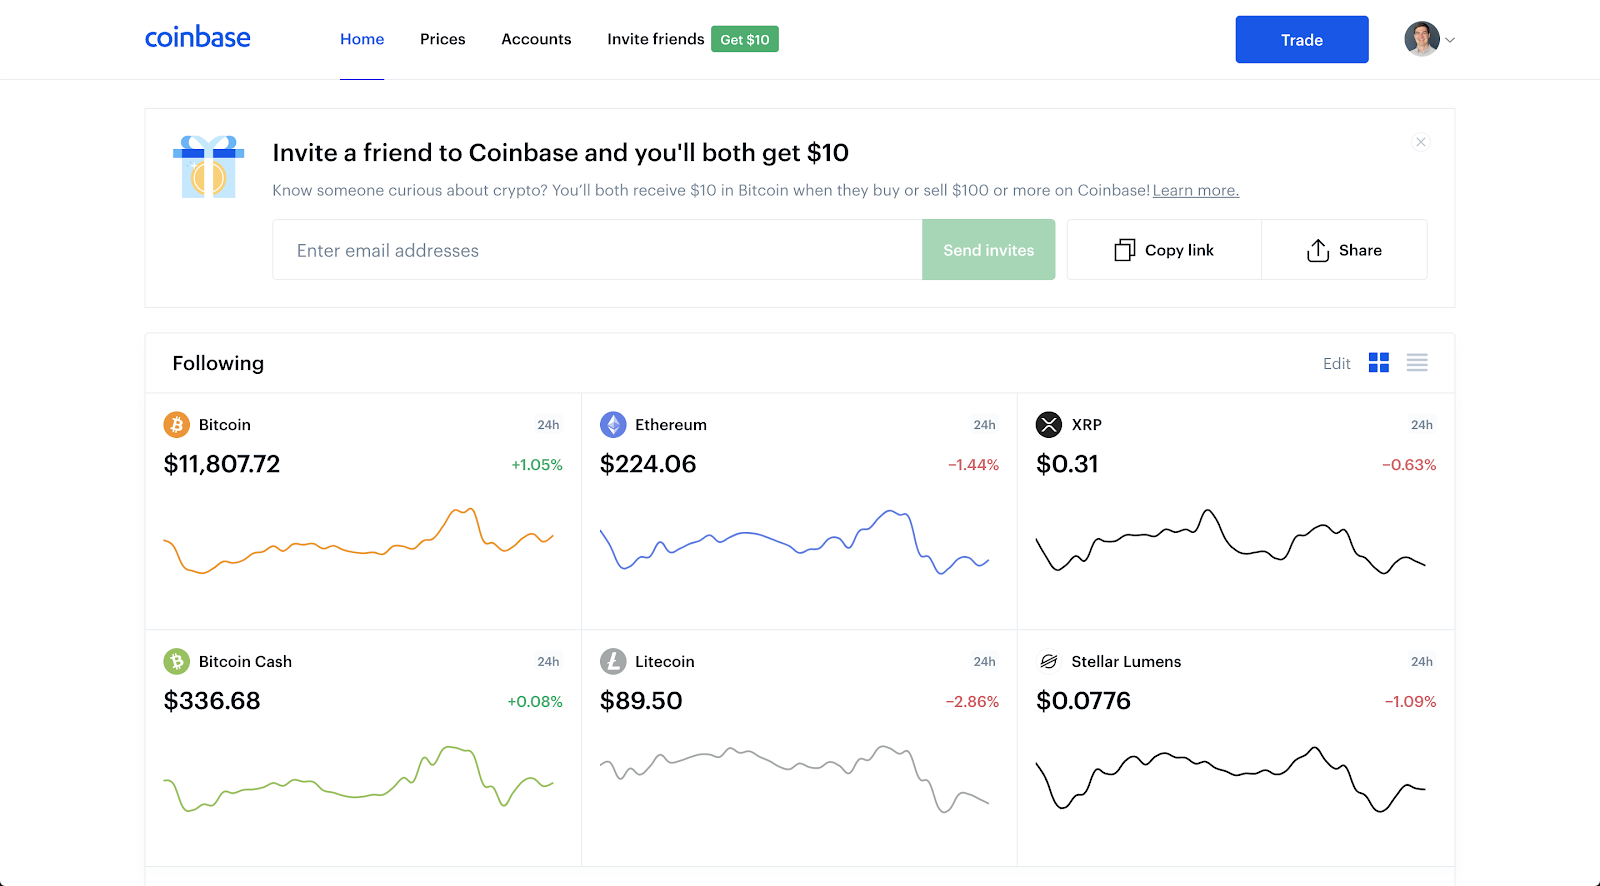 coinbase dashboard invite a friend reward prompt and referral rewards program